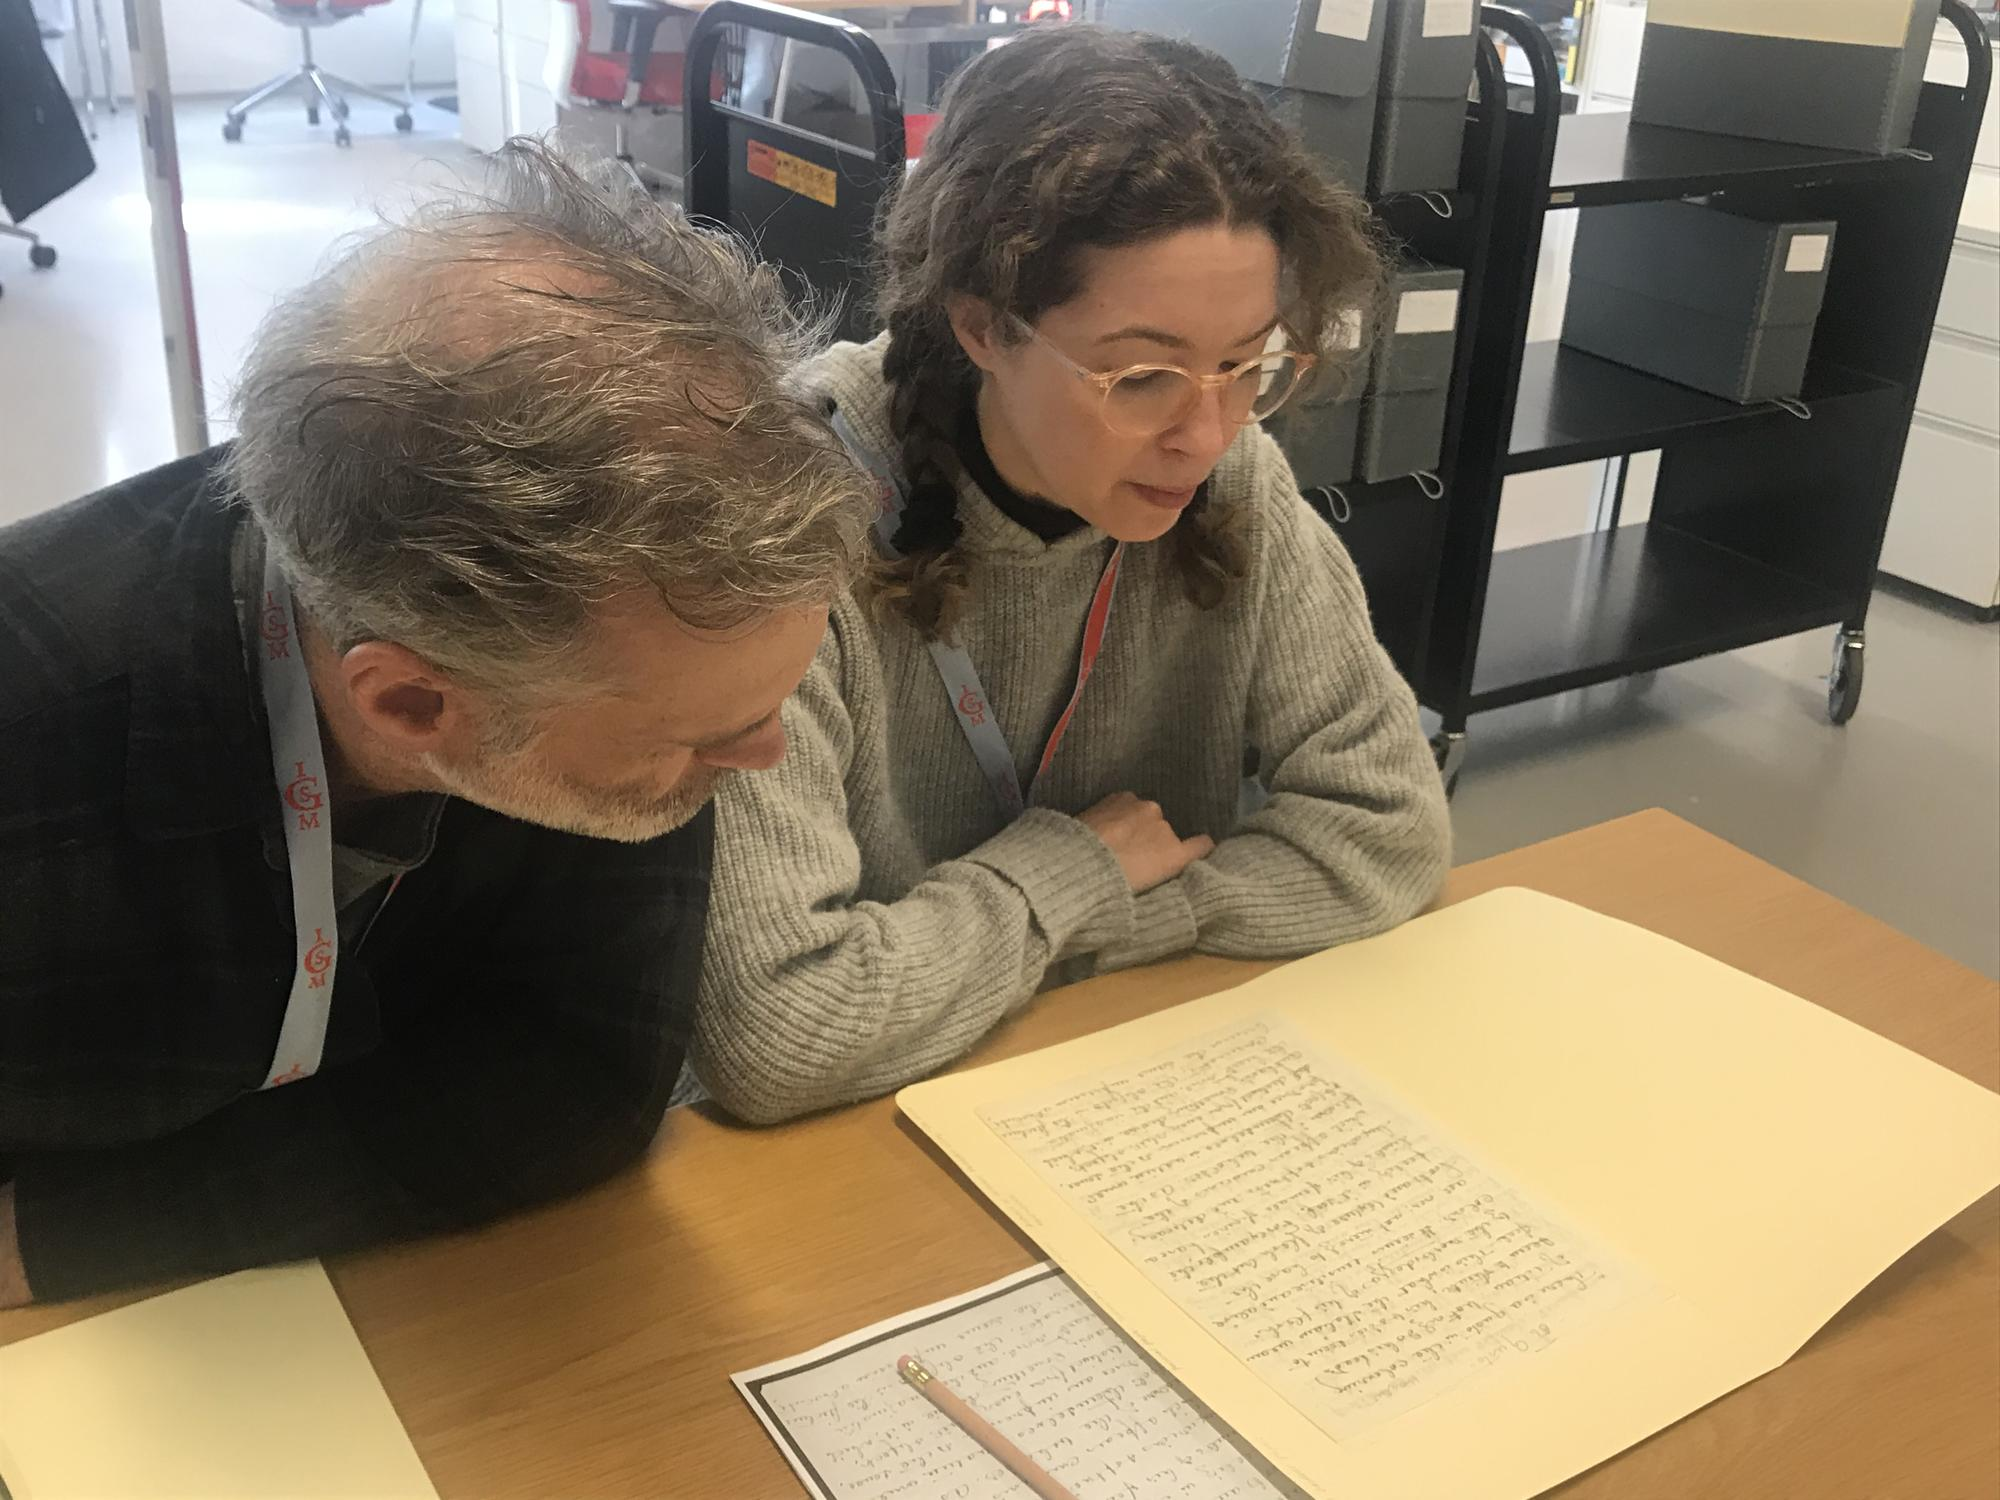 Mary Reid Kelley and Patrick Kelley in the archives, 2019